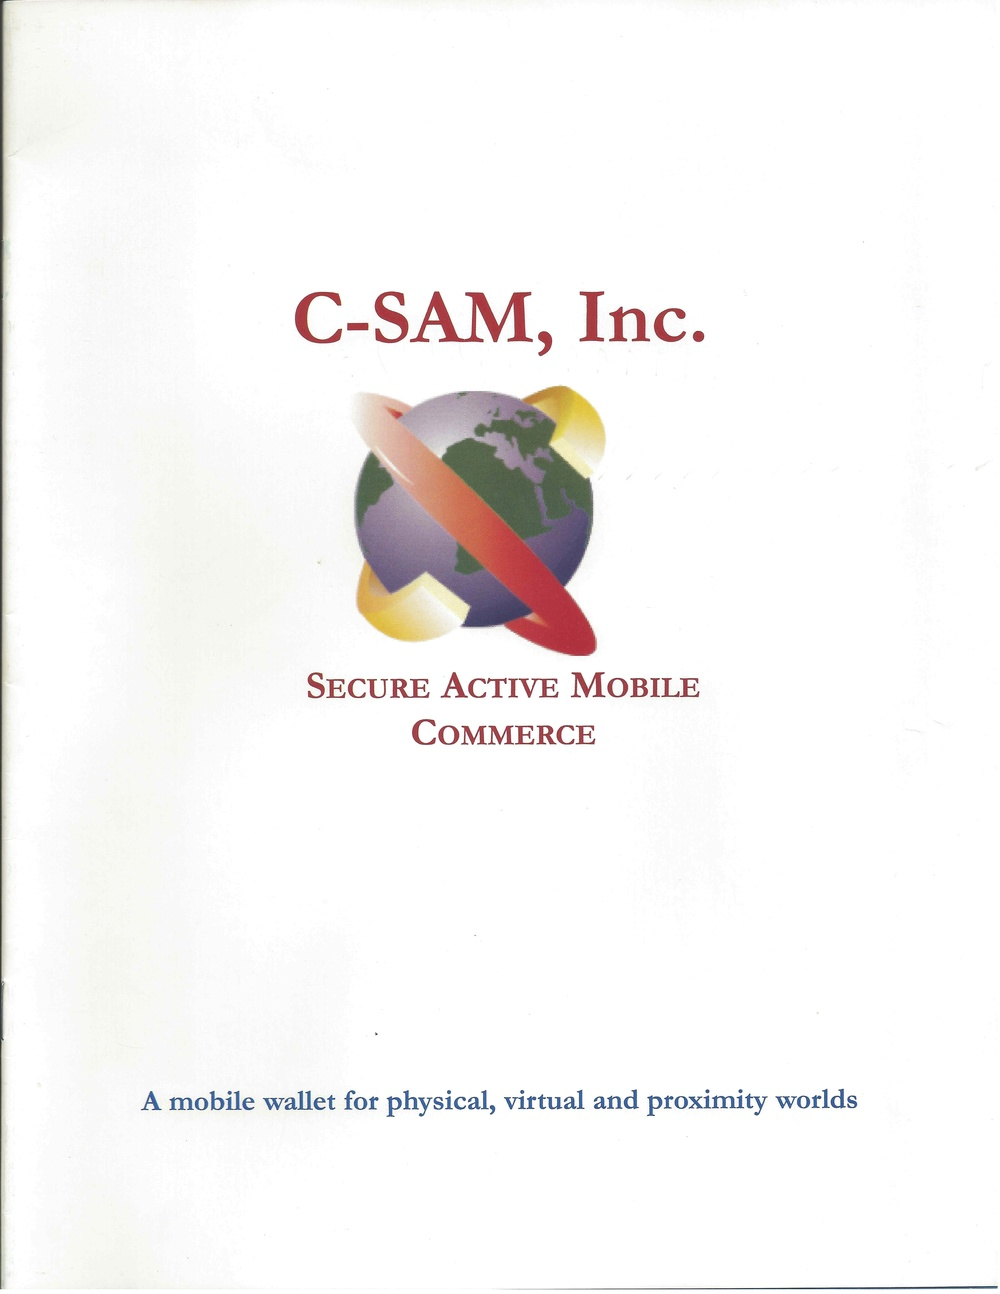 Click here to see an early C-SAM brochure